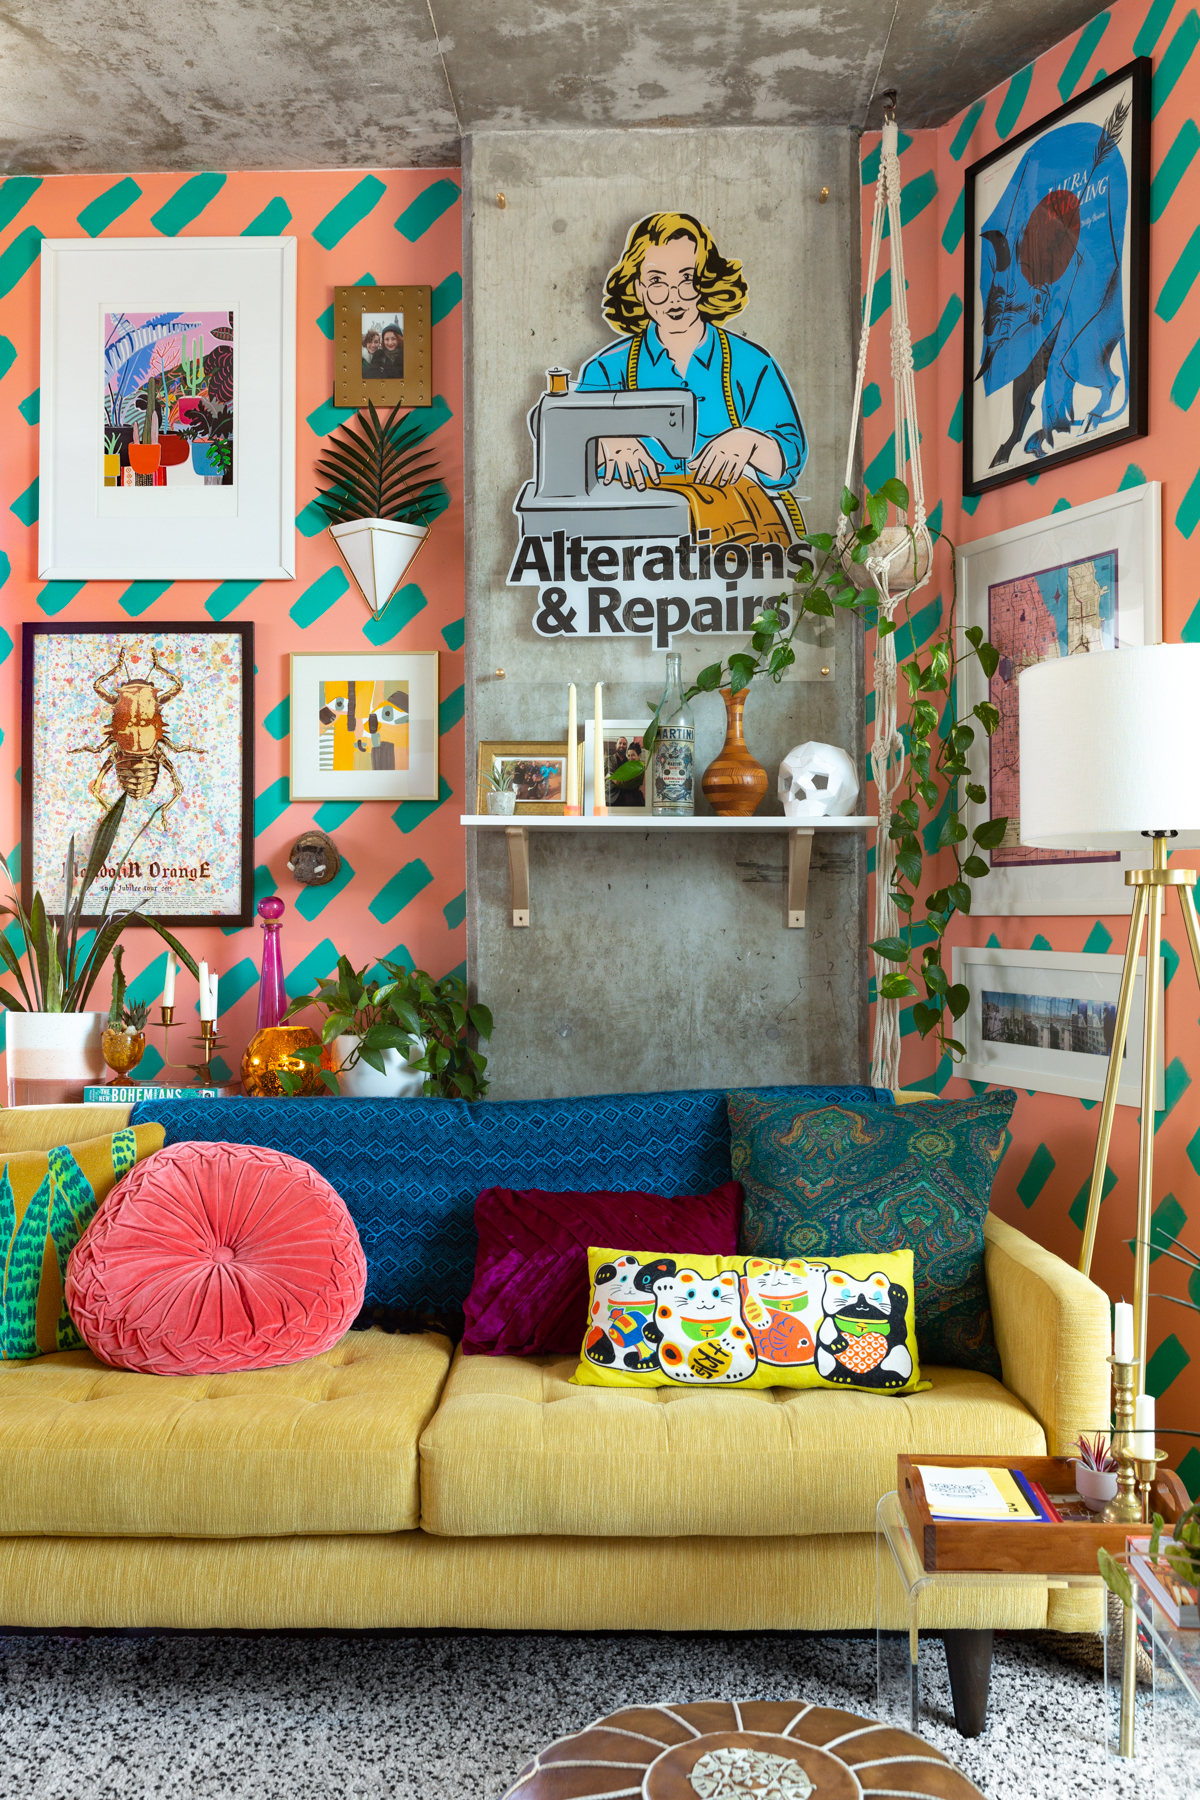 Wondrous Colorful And Patterned Chicago Loft Tour Photos Apartment Home Interior And Landscaping Transignezvosmurscom